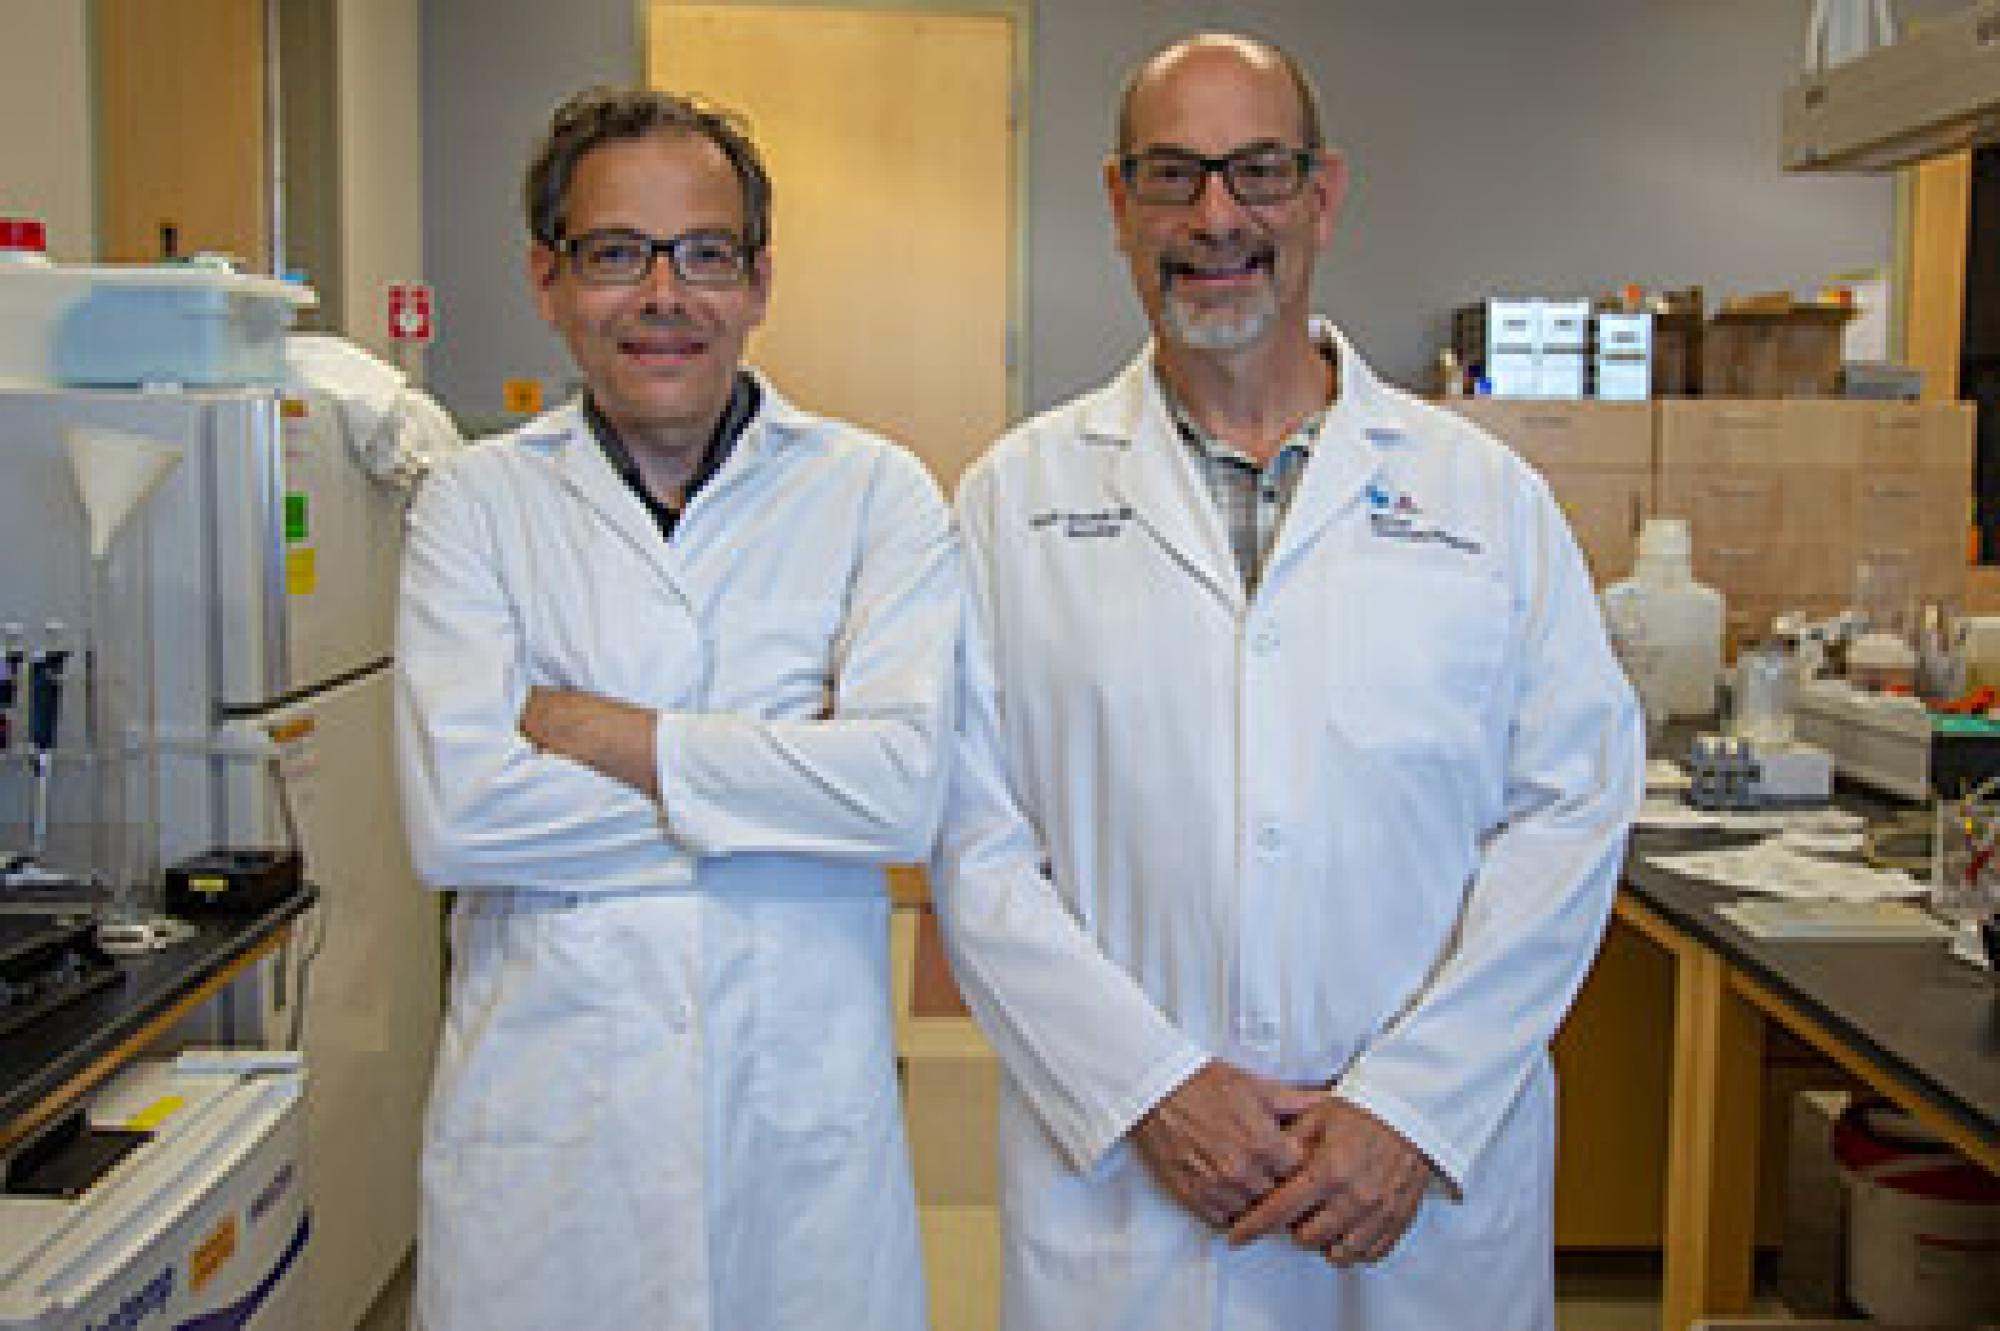 Neuroscientist Torsten Falk and neurologist Scott Sherman are teaming up to study the use of ketamine in patients with Parkinson's disease.